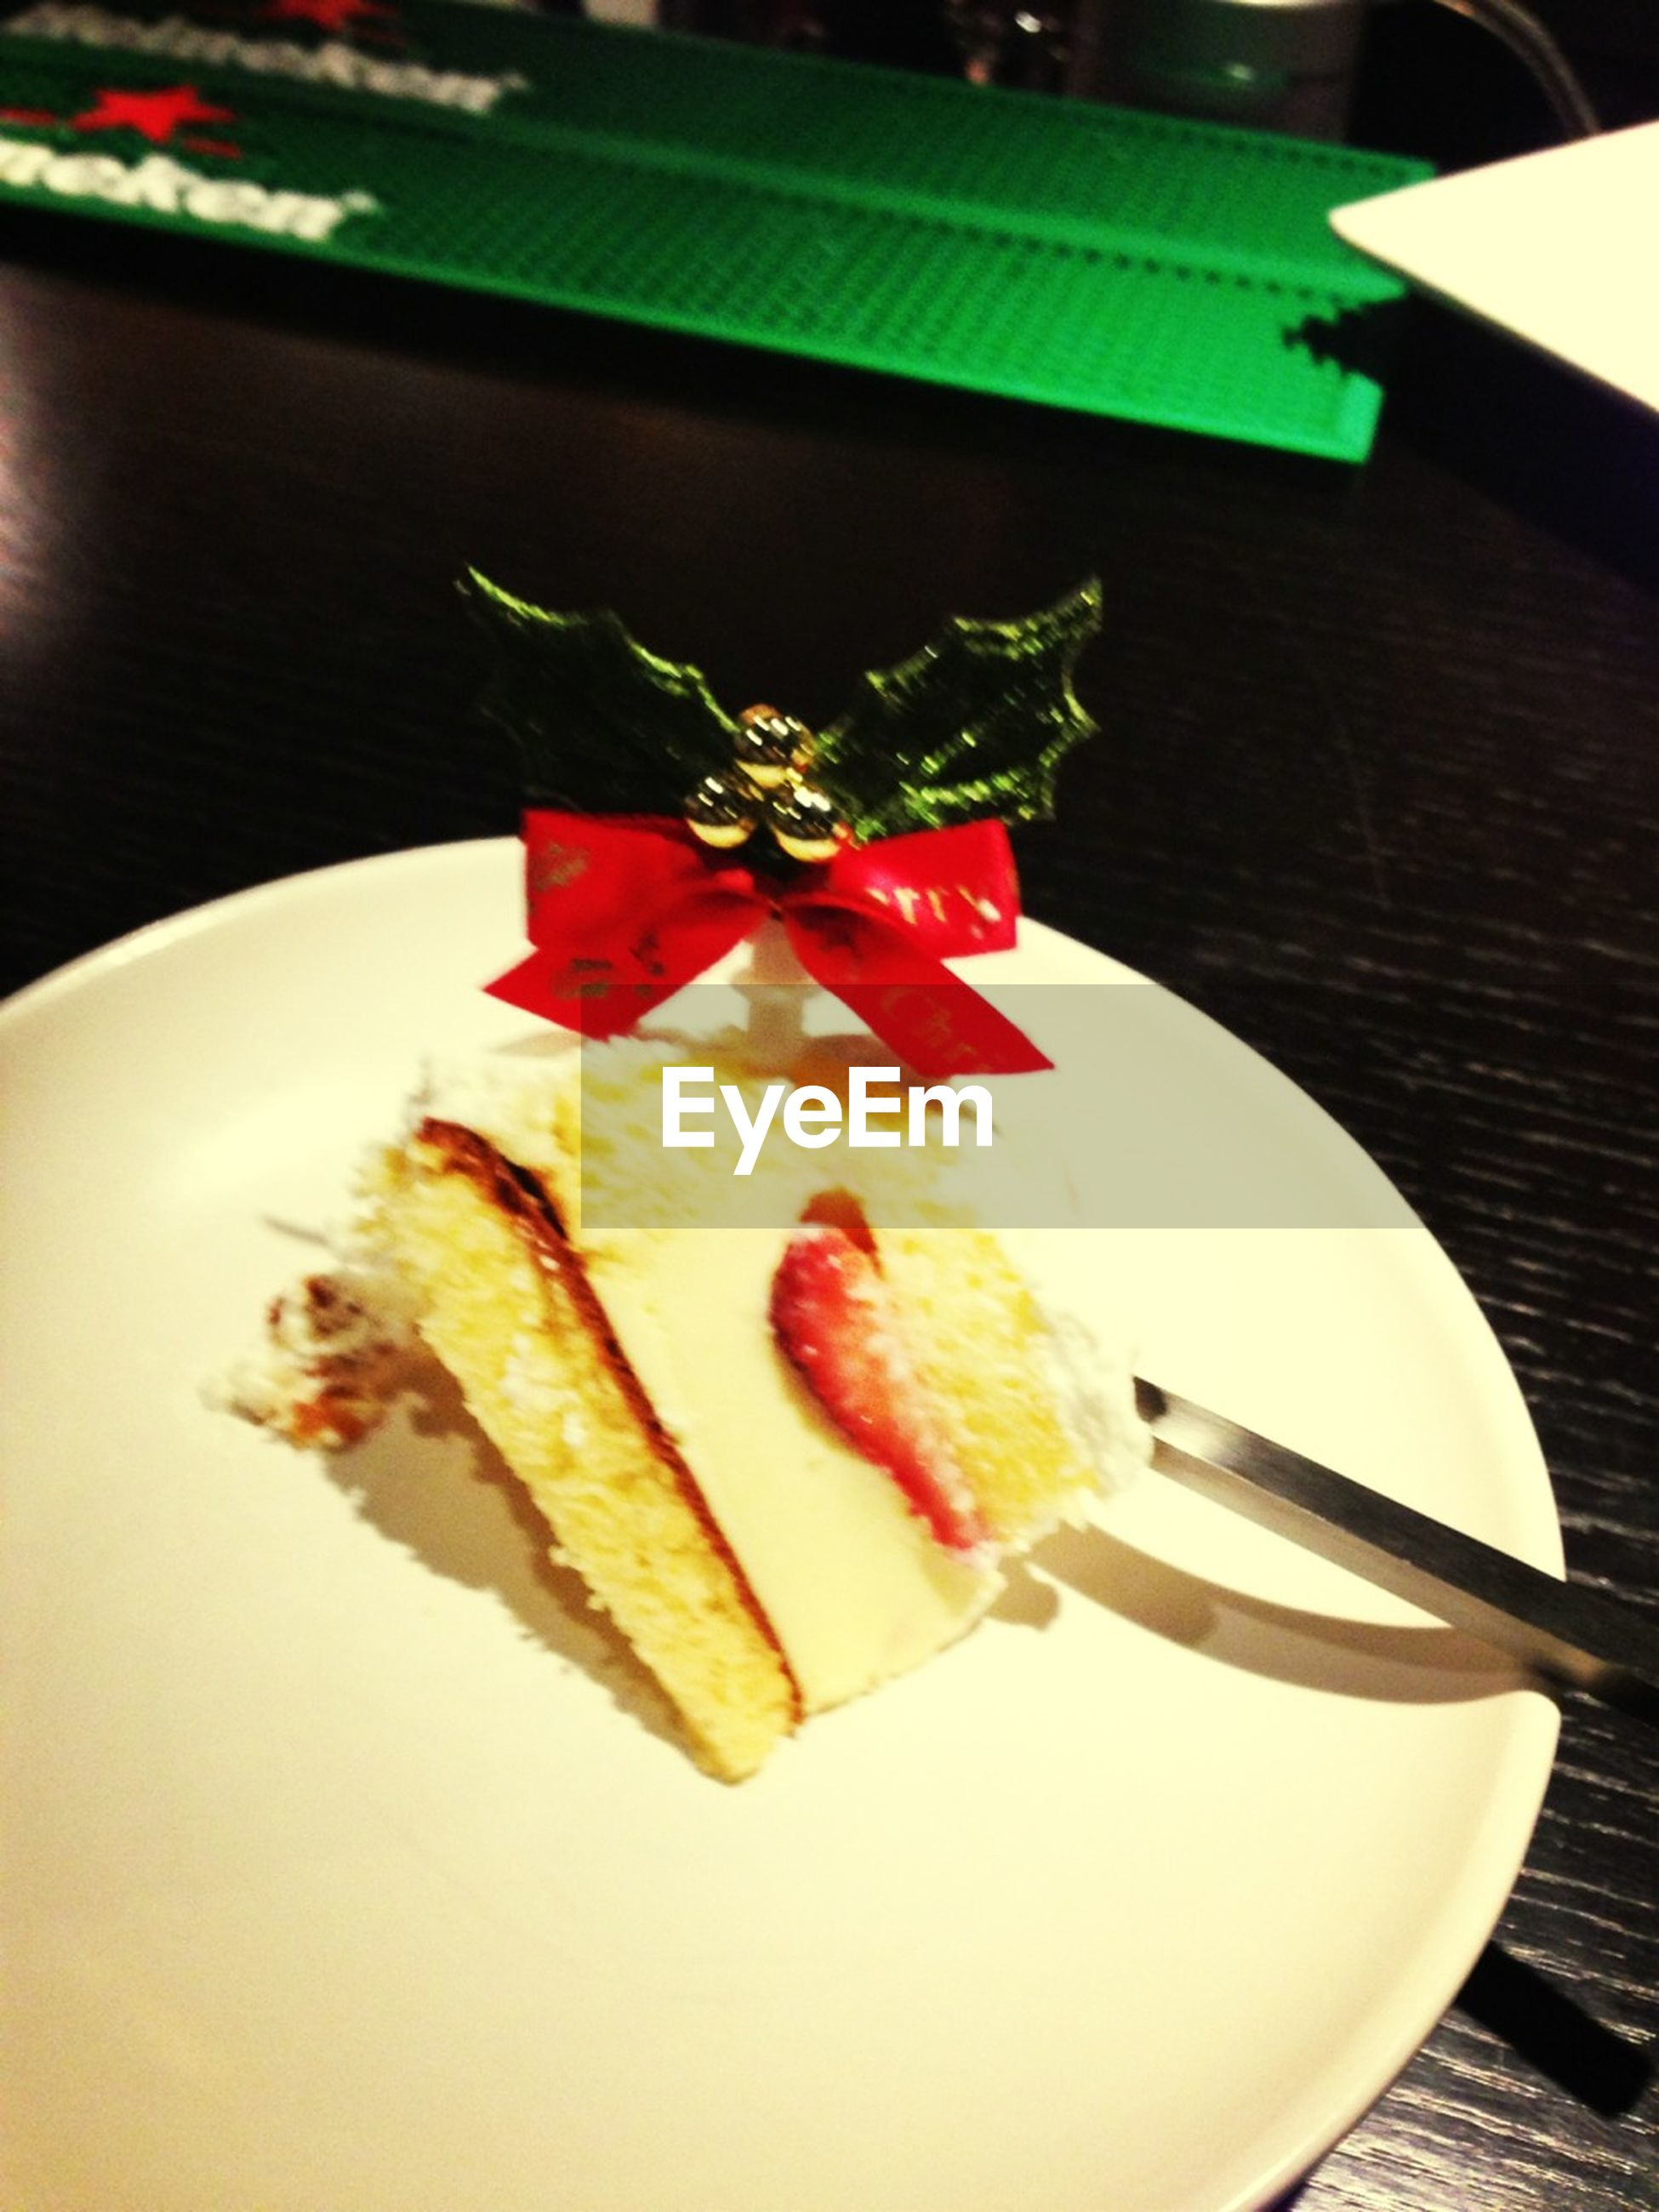 indoors, food and drink, table, plate, food, freshness, still life, sweet food, ready-to-eat, dessert, indulgence, cake, close-up, high angle view, unhealthy eating, decoration, serving size, temptation, focus on foreground, fork